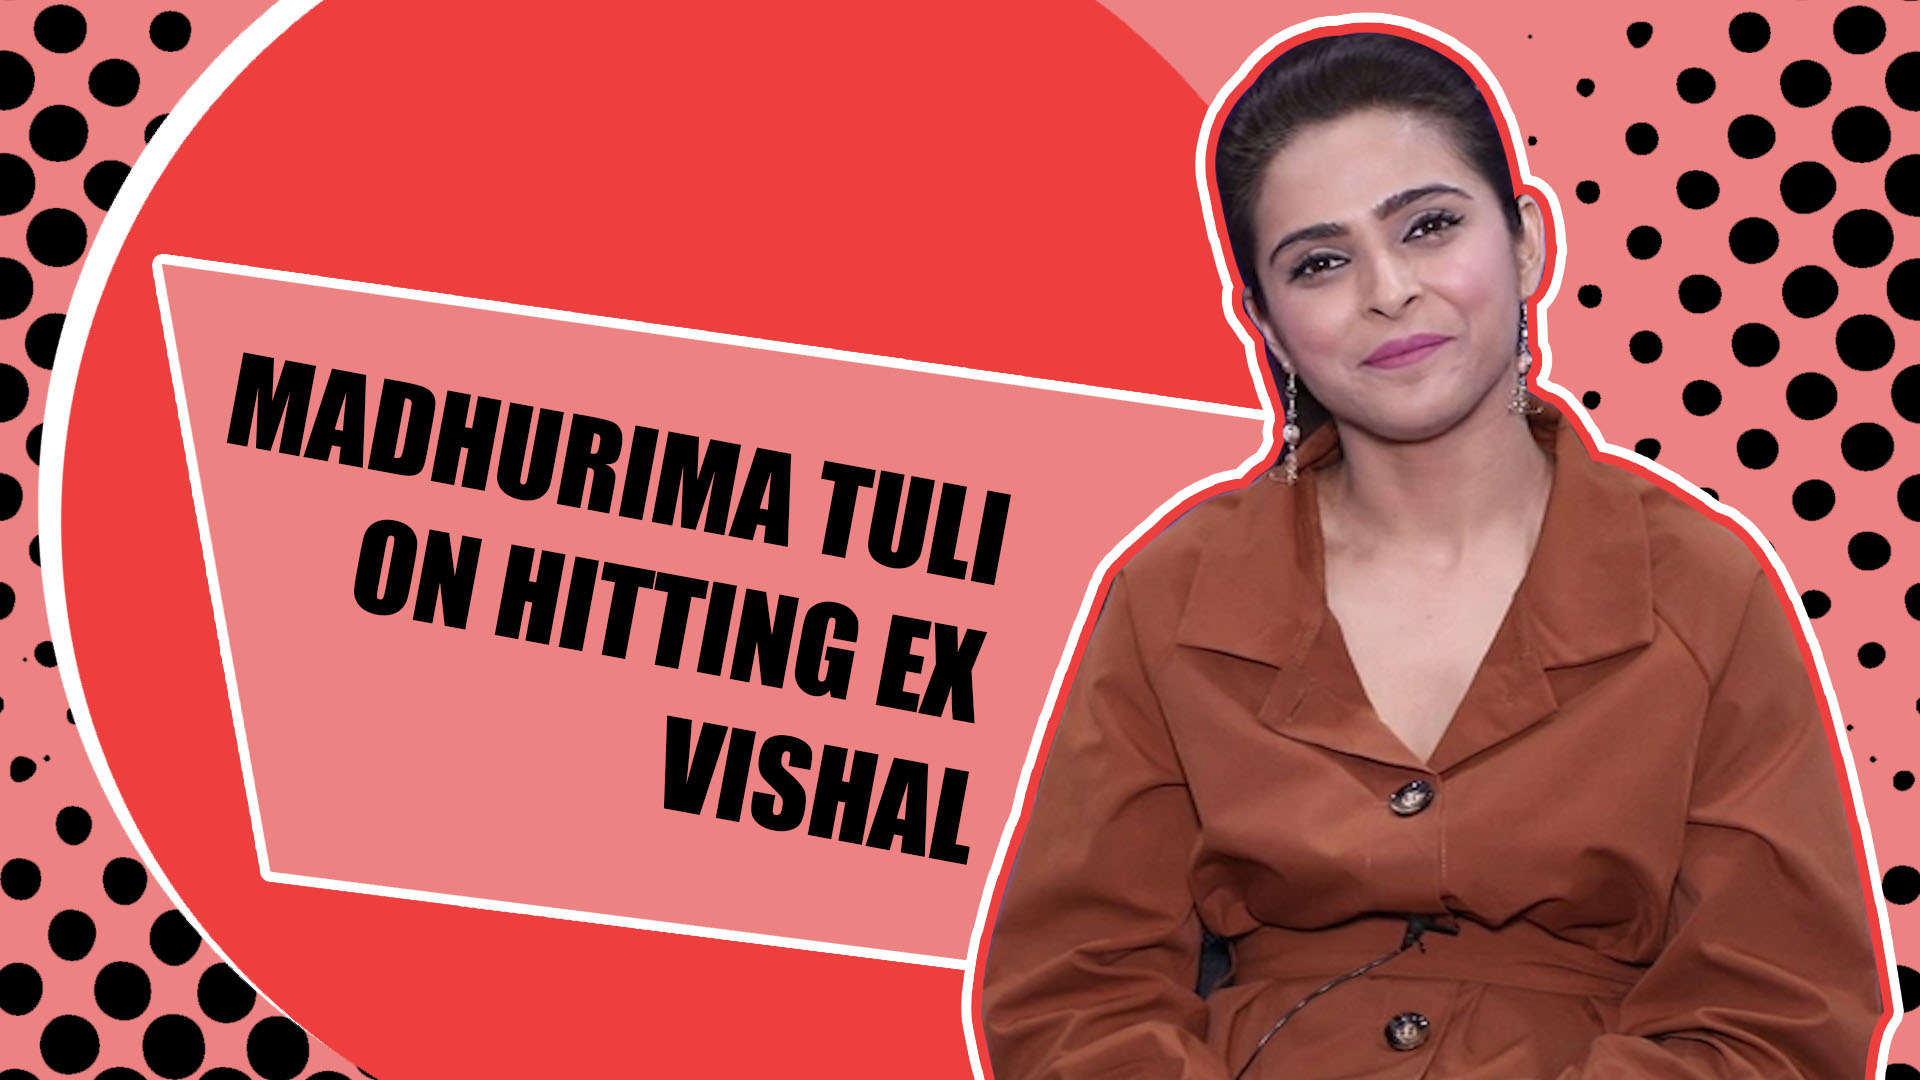 BB 13's Madhurima Tuli on hitting Ex Vishal: Even he has hit me in the past, this time I reacted